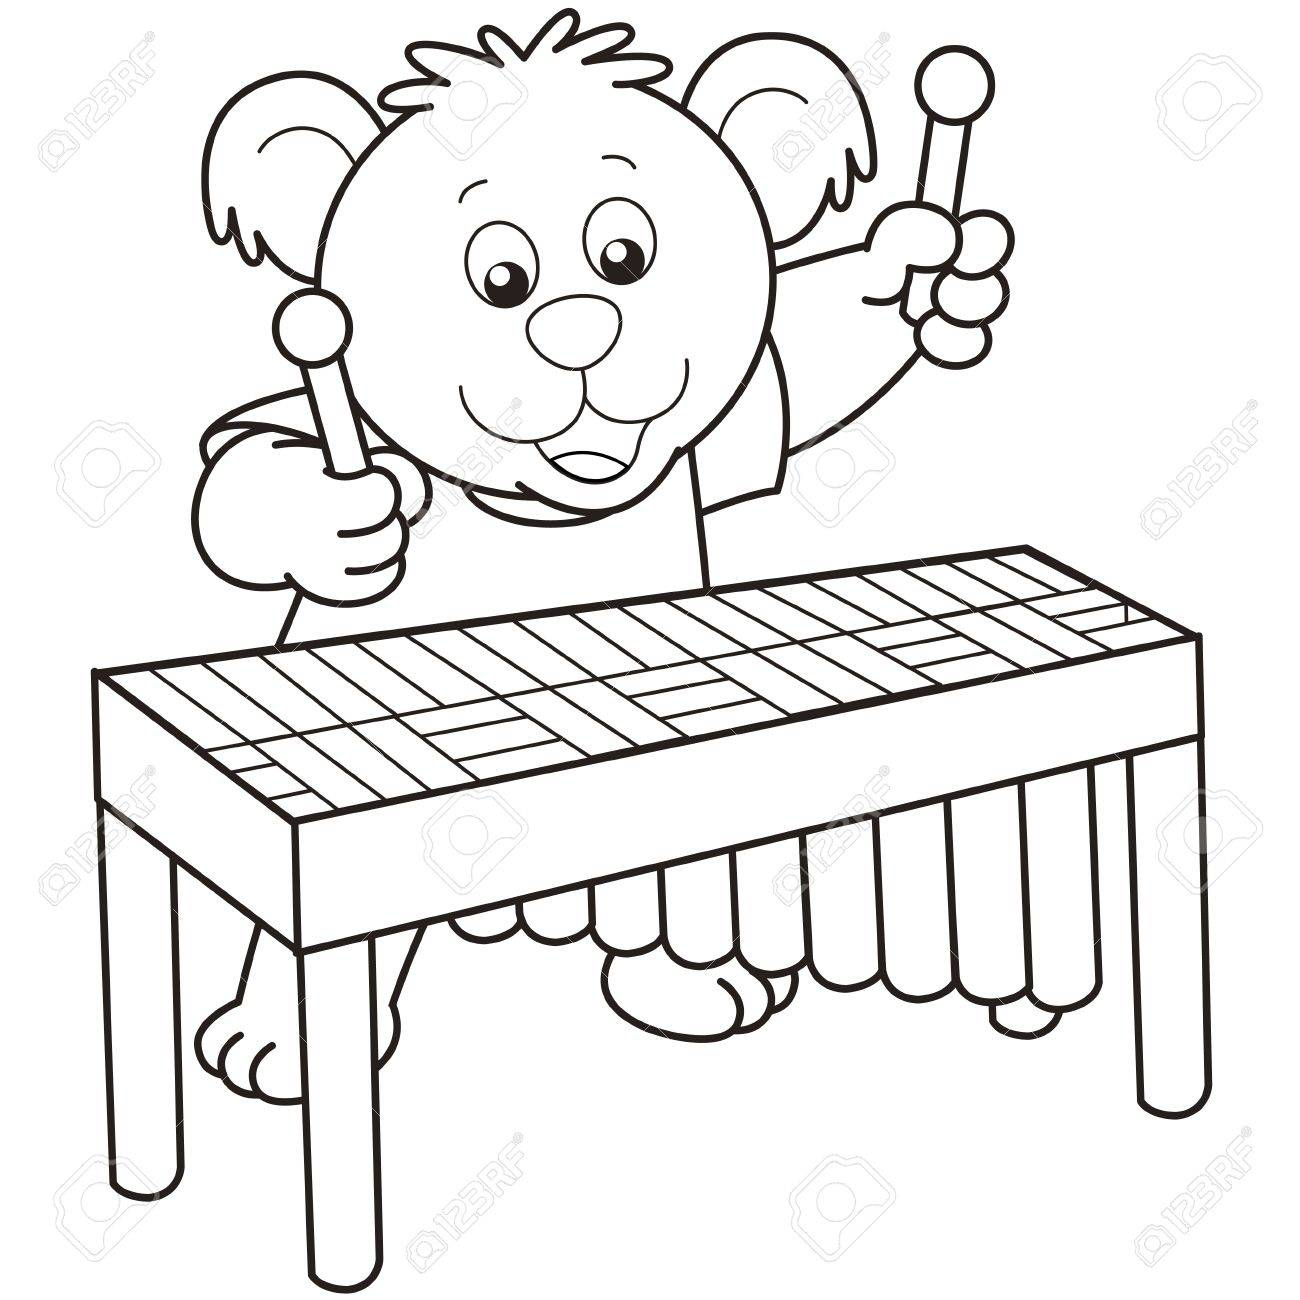 Cartoon Bear playing a vibraphone.black and white Stock Vector - 18630060